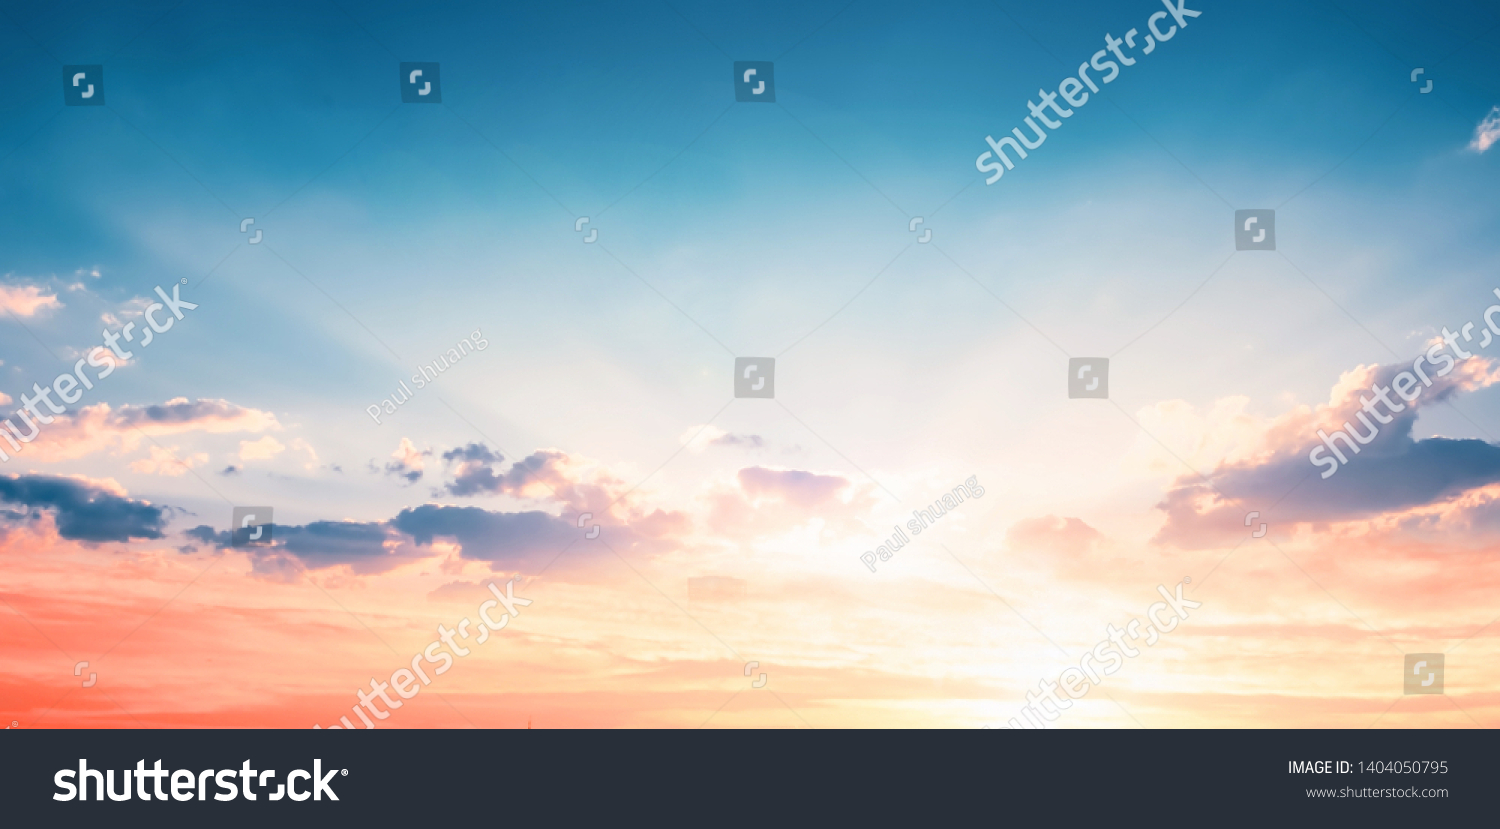 Background of colorful sky concept: Dramatic sunset with twilight color sky and clouds #1404050795